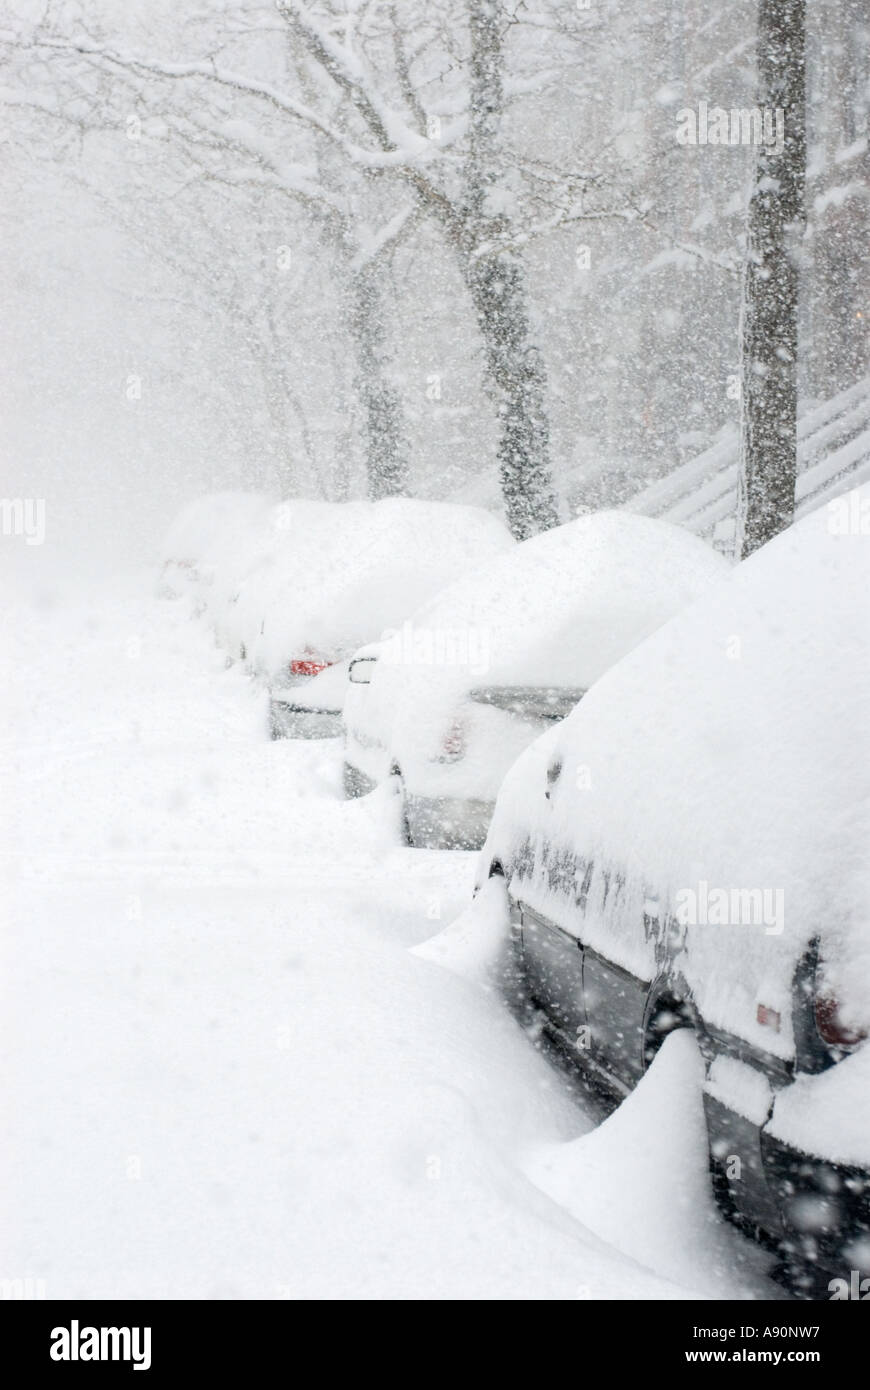 Cars Buried after Snowstorm in New York City, February 2006 - Stock Image